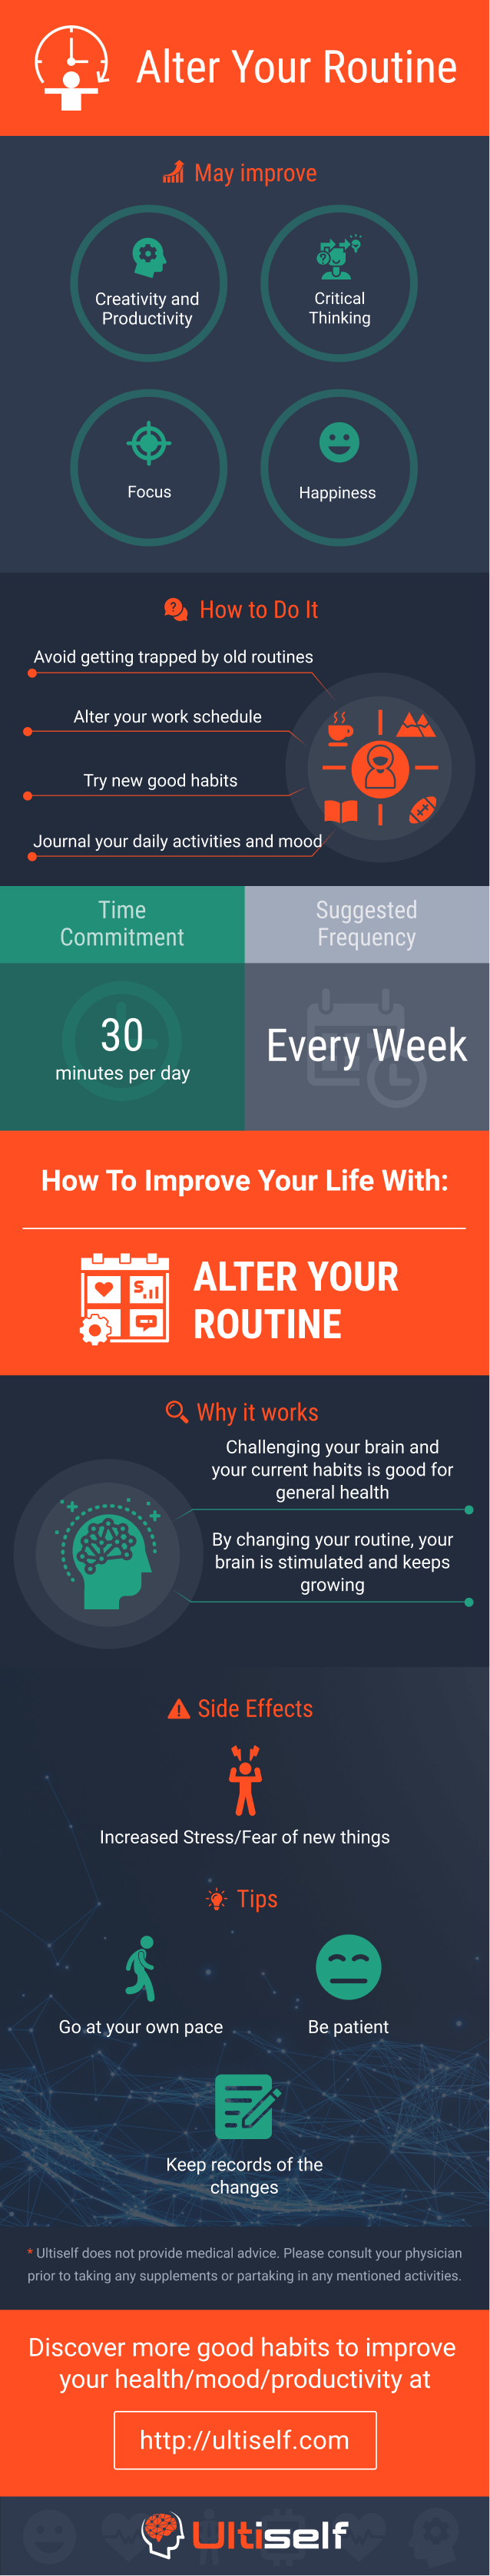 Alter Your Routine infographic